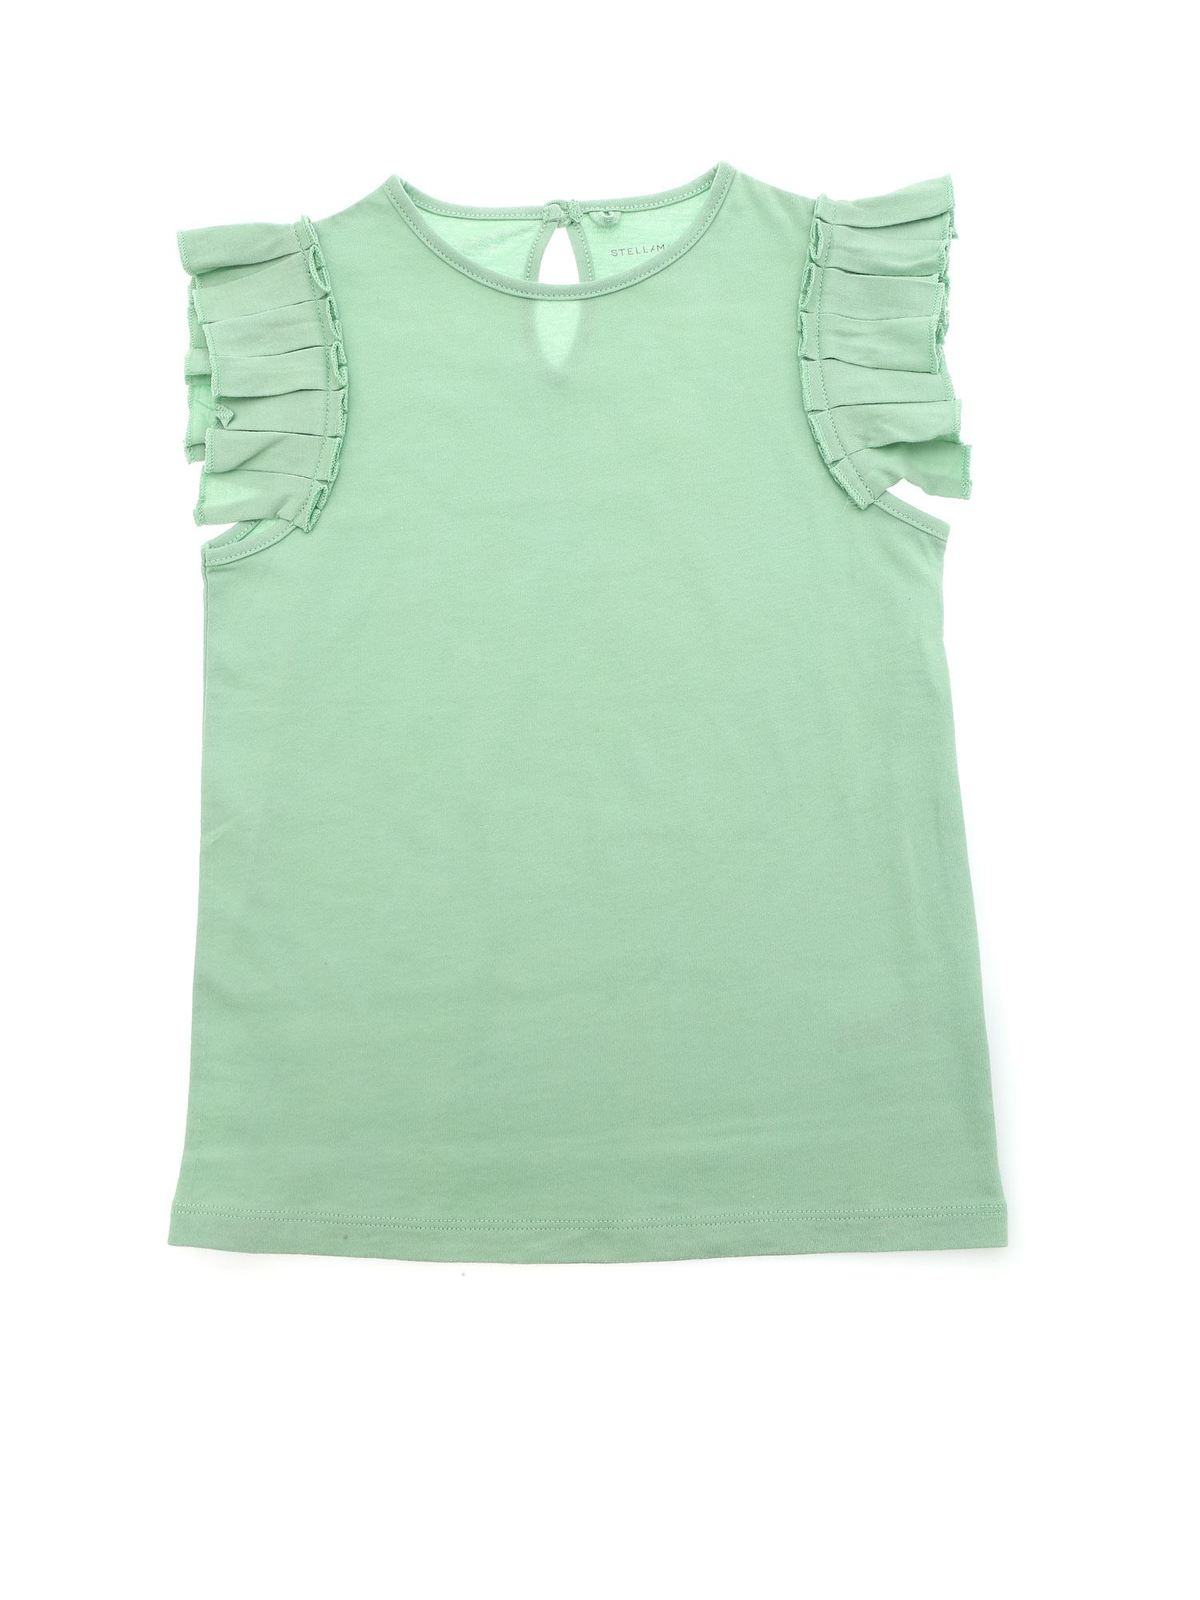 STELLA MCCARTNEY PLEATED RUFFLE TOP IN MINT GREEN